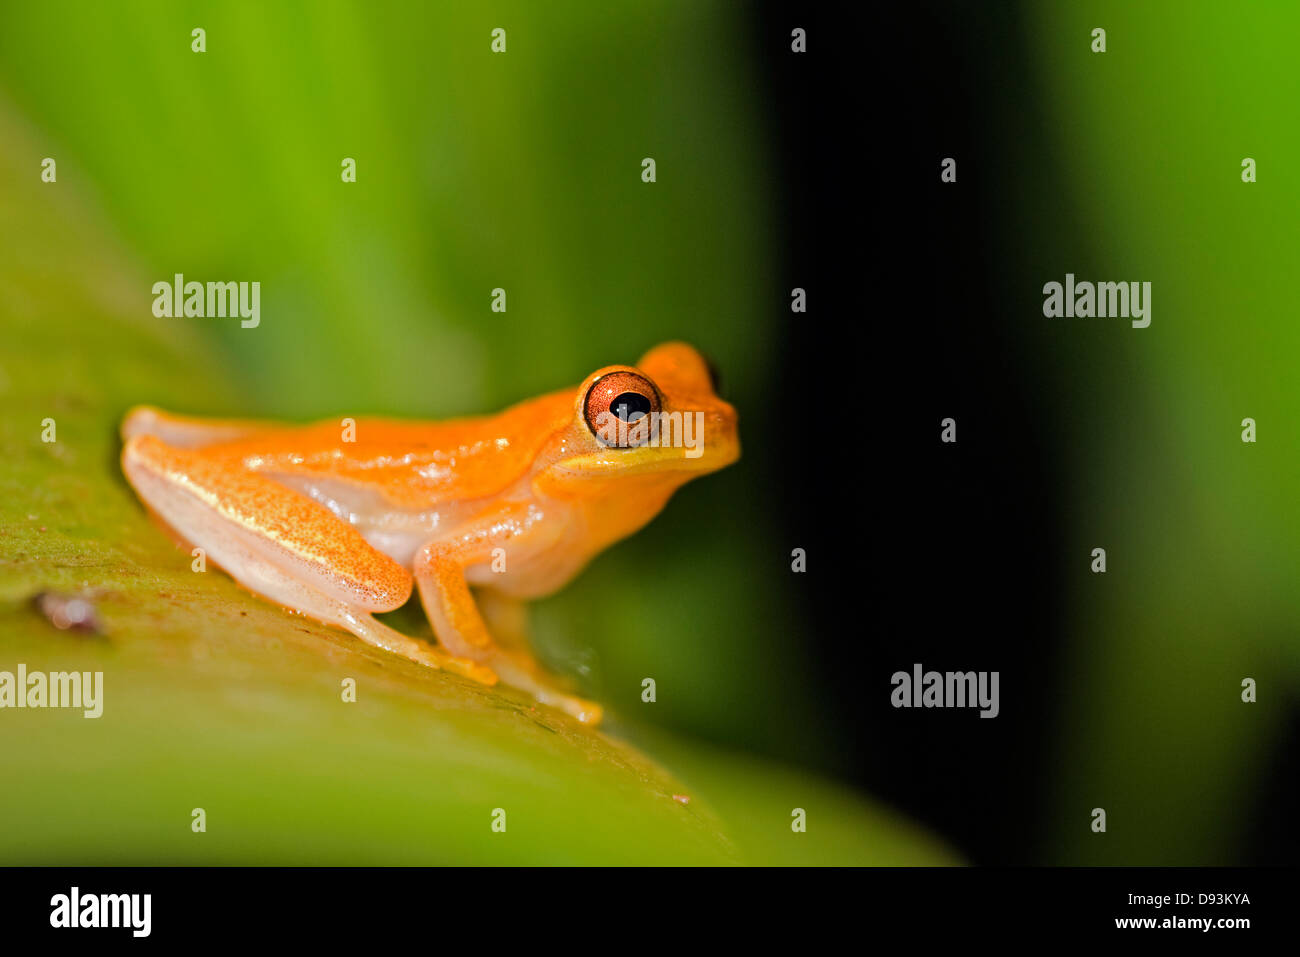 golden-toad-on-a-leaf-costa-rica-D93KYA.